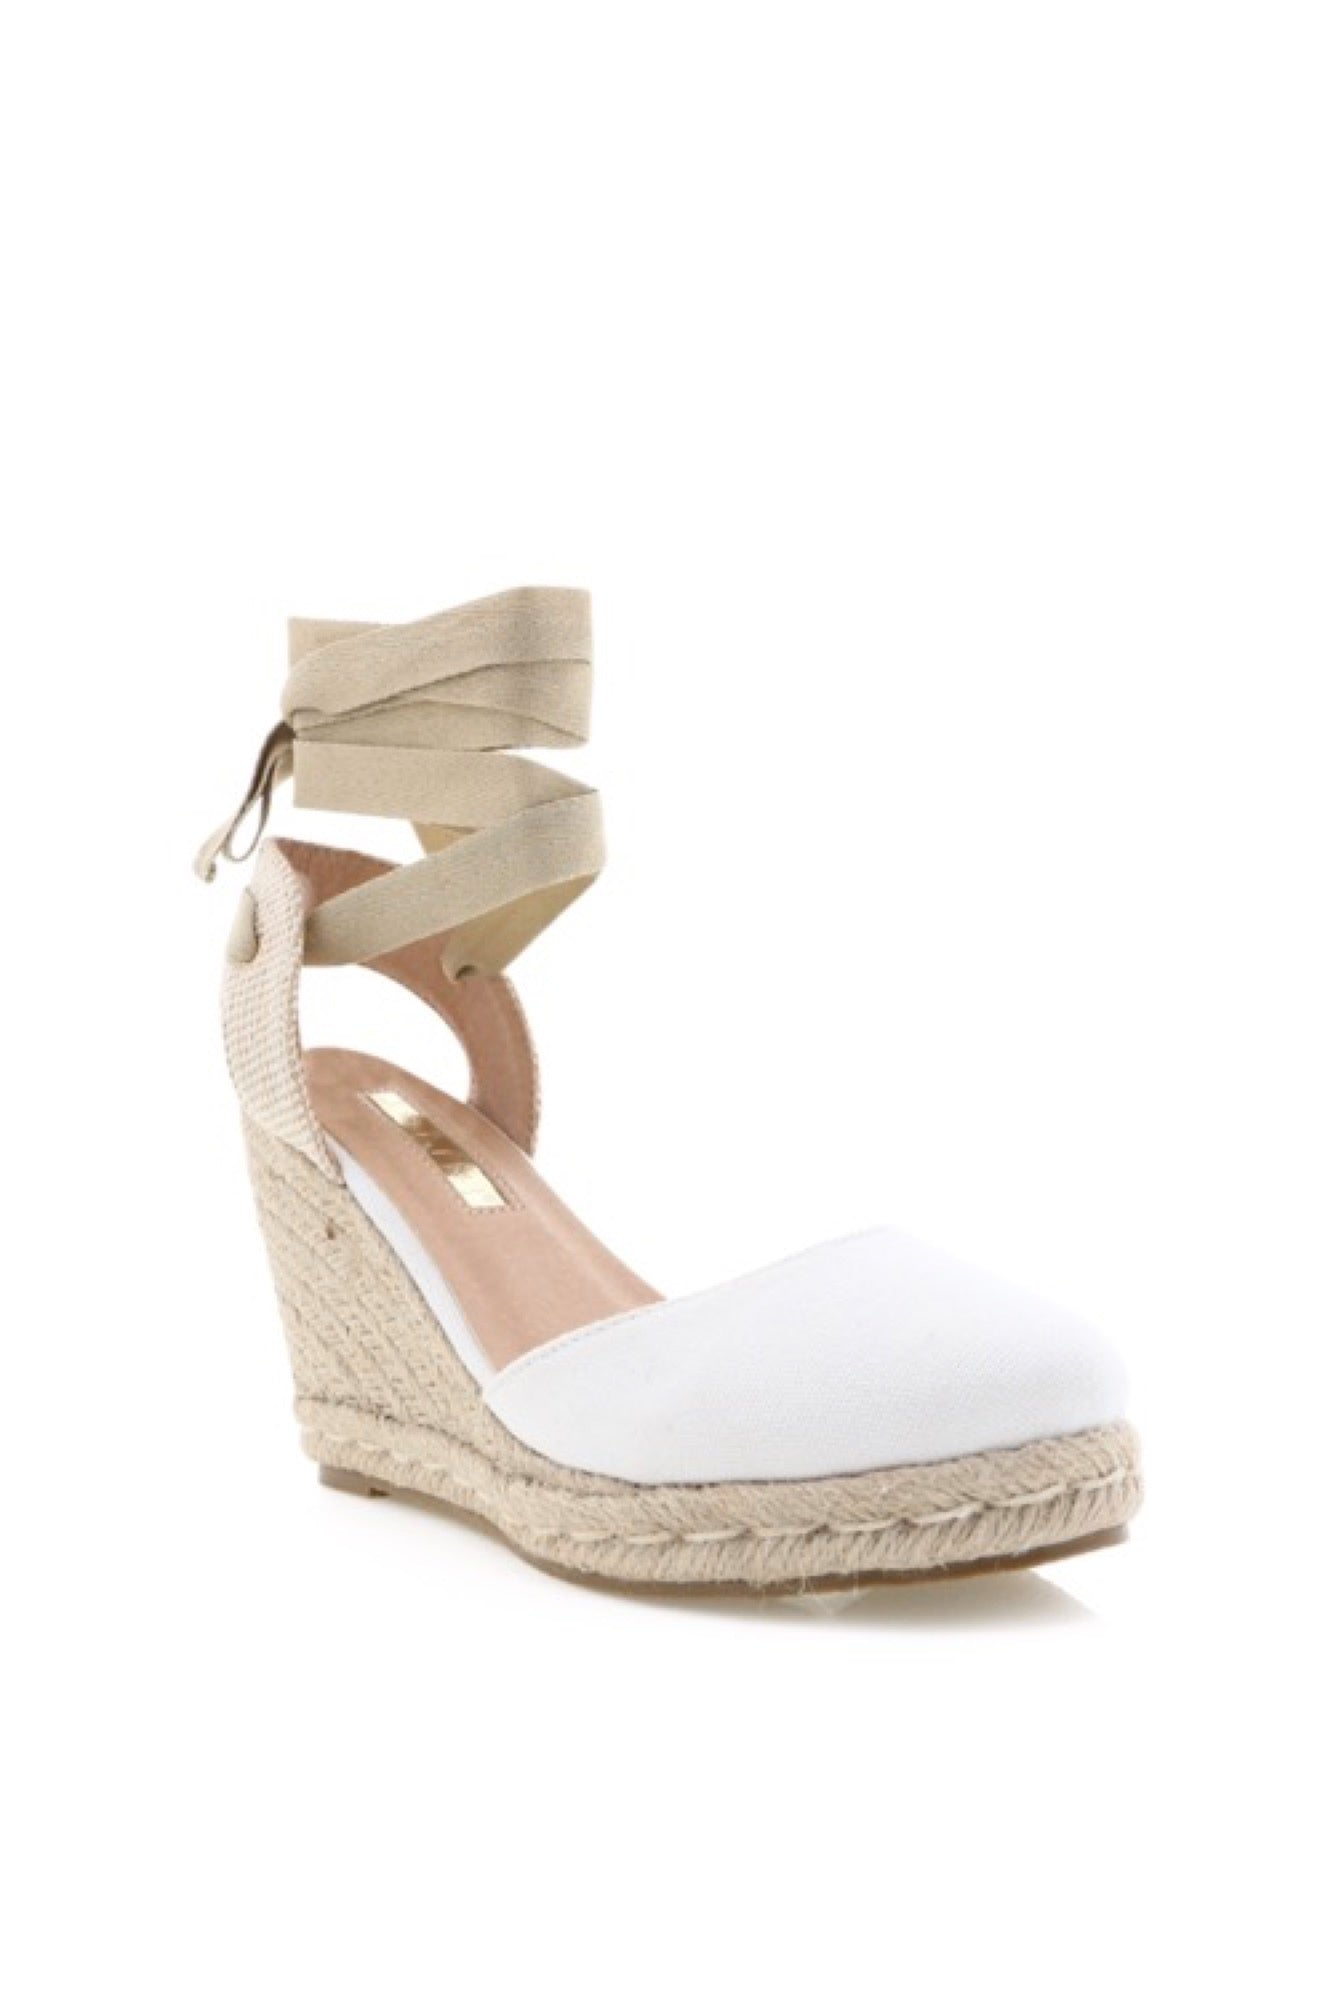 Carina Wedge - White Linen